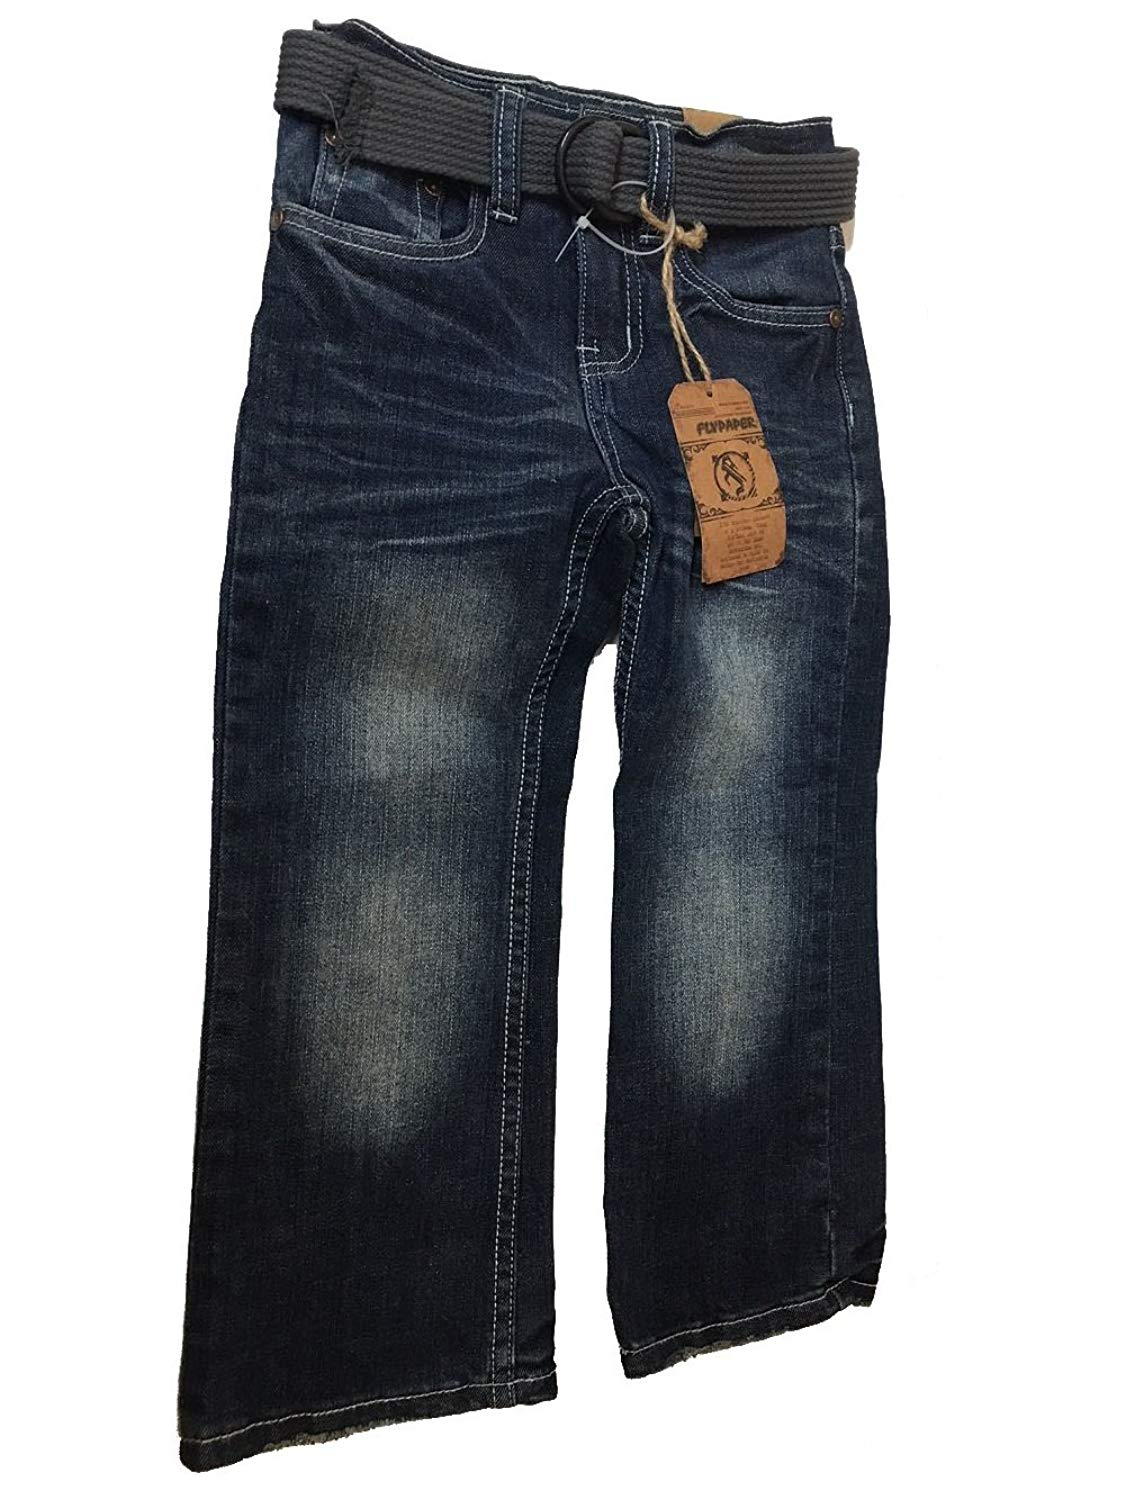 11e947936 Get Quotations · Flypaper Jeans 9134wtbz-Toddler Boys Boot Cut Jeans 2T